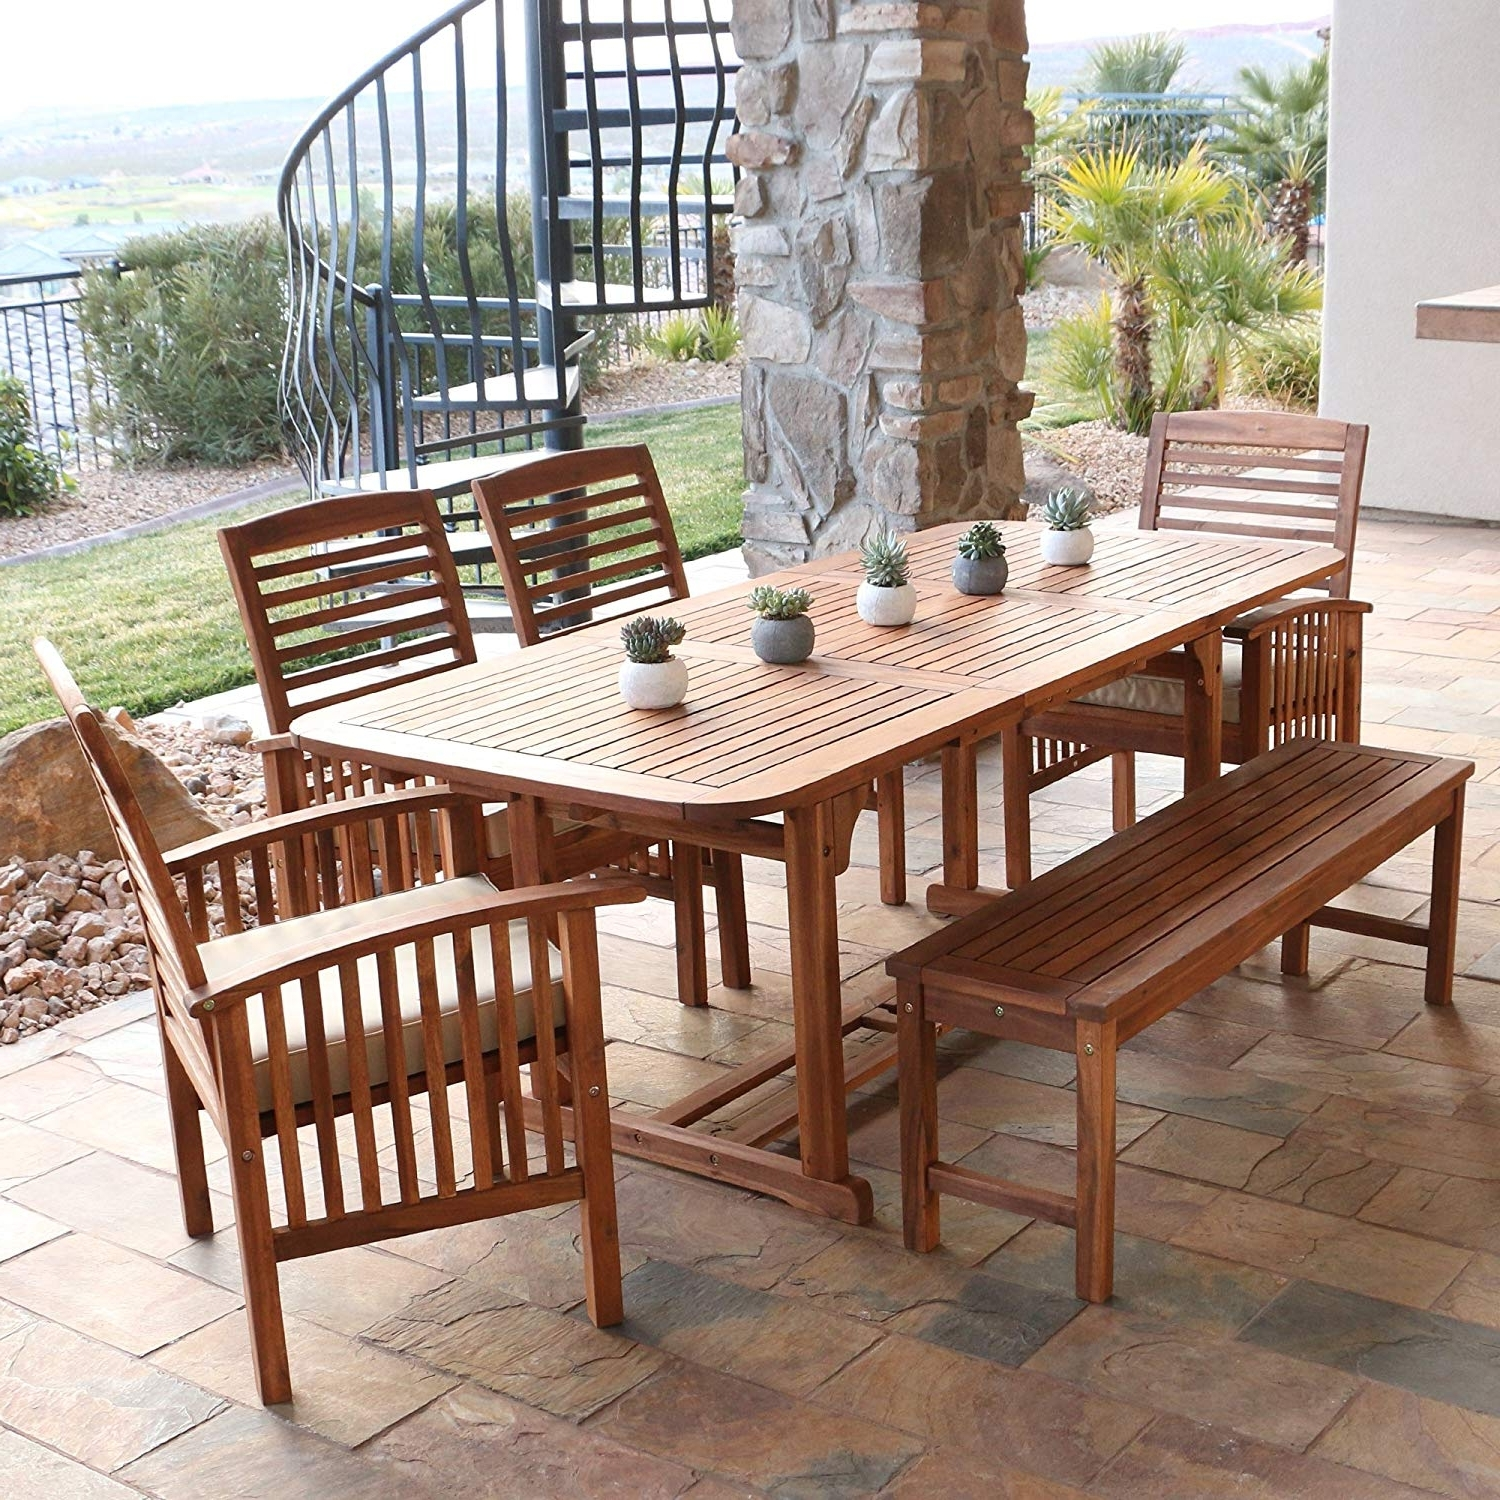 2018 Acacia Dining Tables With Regard To Amazon: We Furniture Solid Acacia Wood 6 Piece Patio Dining Set (View 22 of 25)